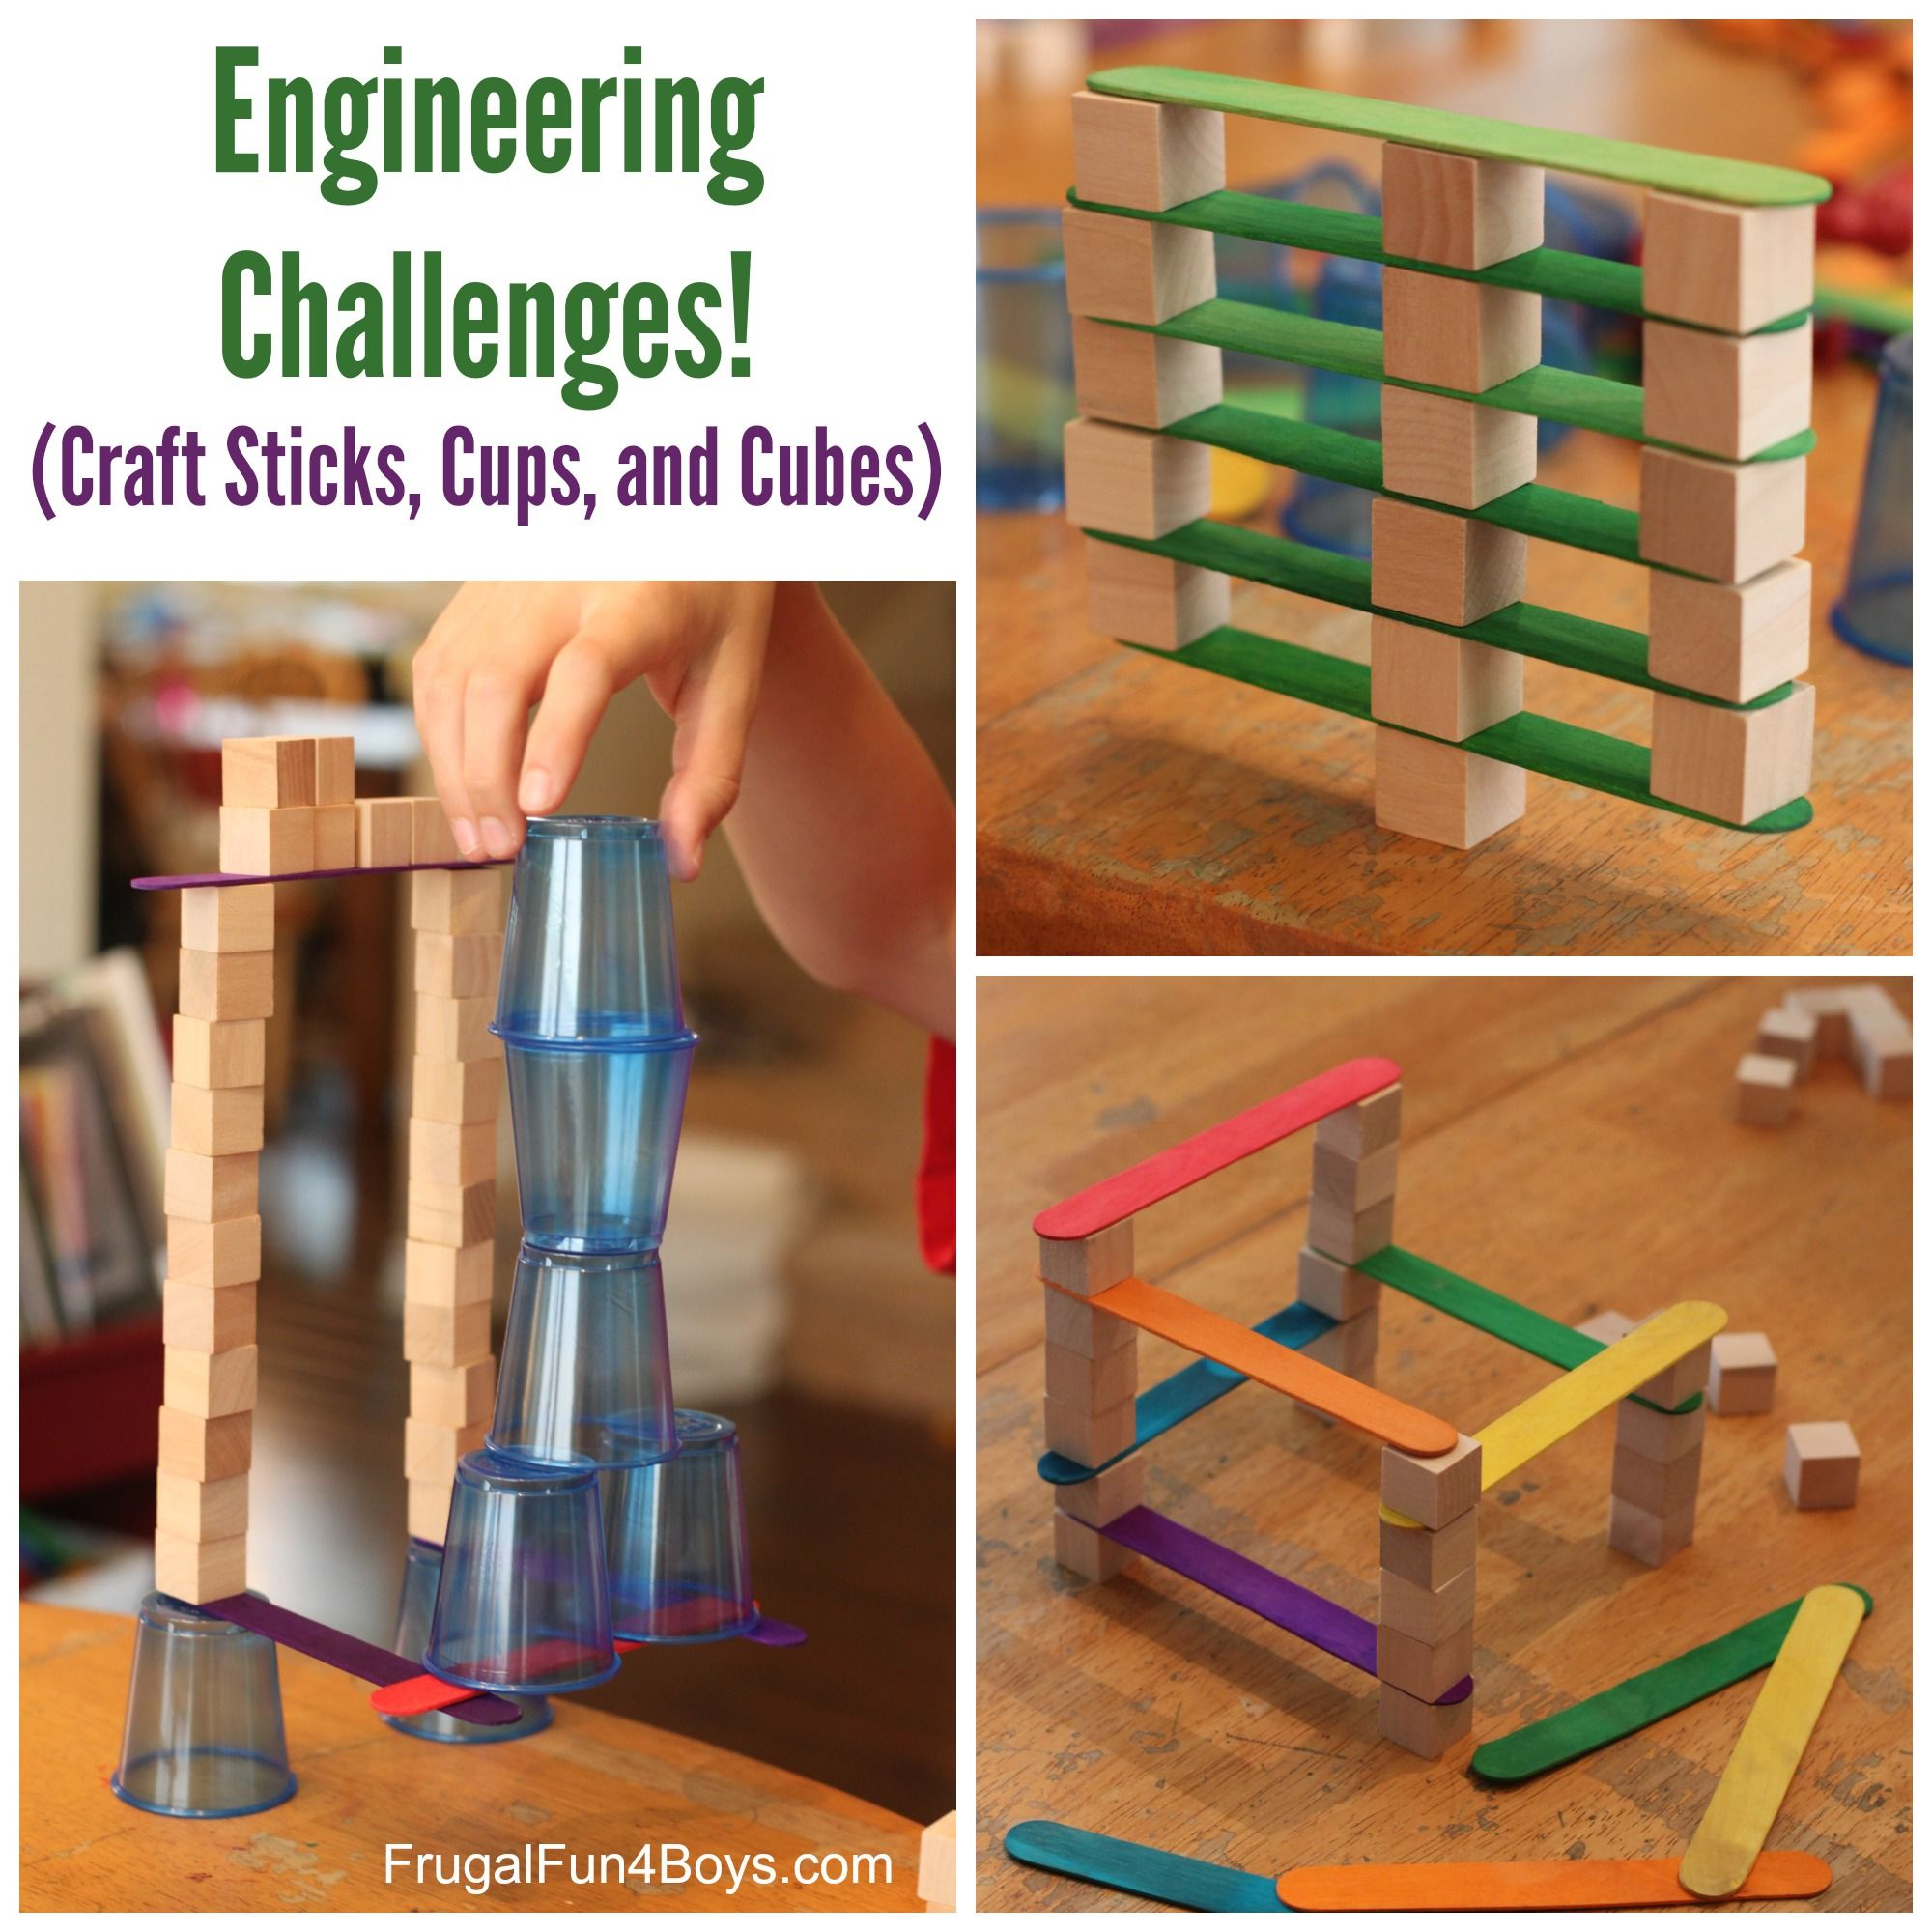 Child craft wooden blocks - 4 Engineering Challenges For Kids Craft Sticks Plastic Cups And Wooden Cubes